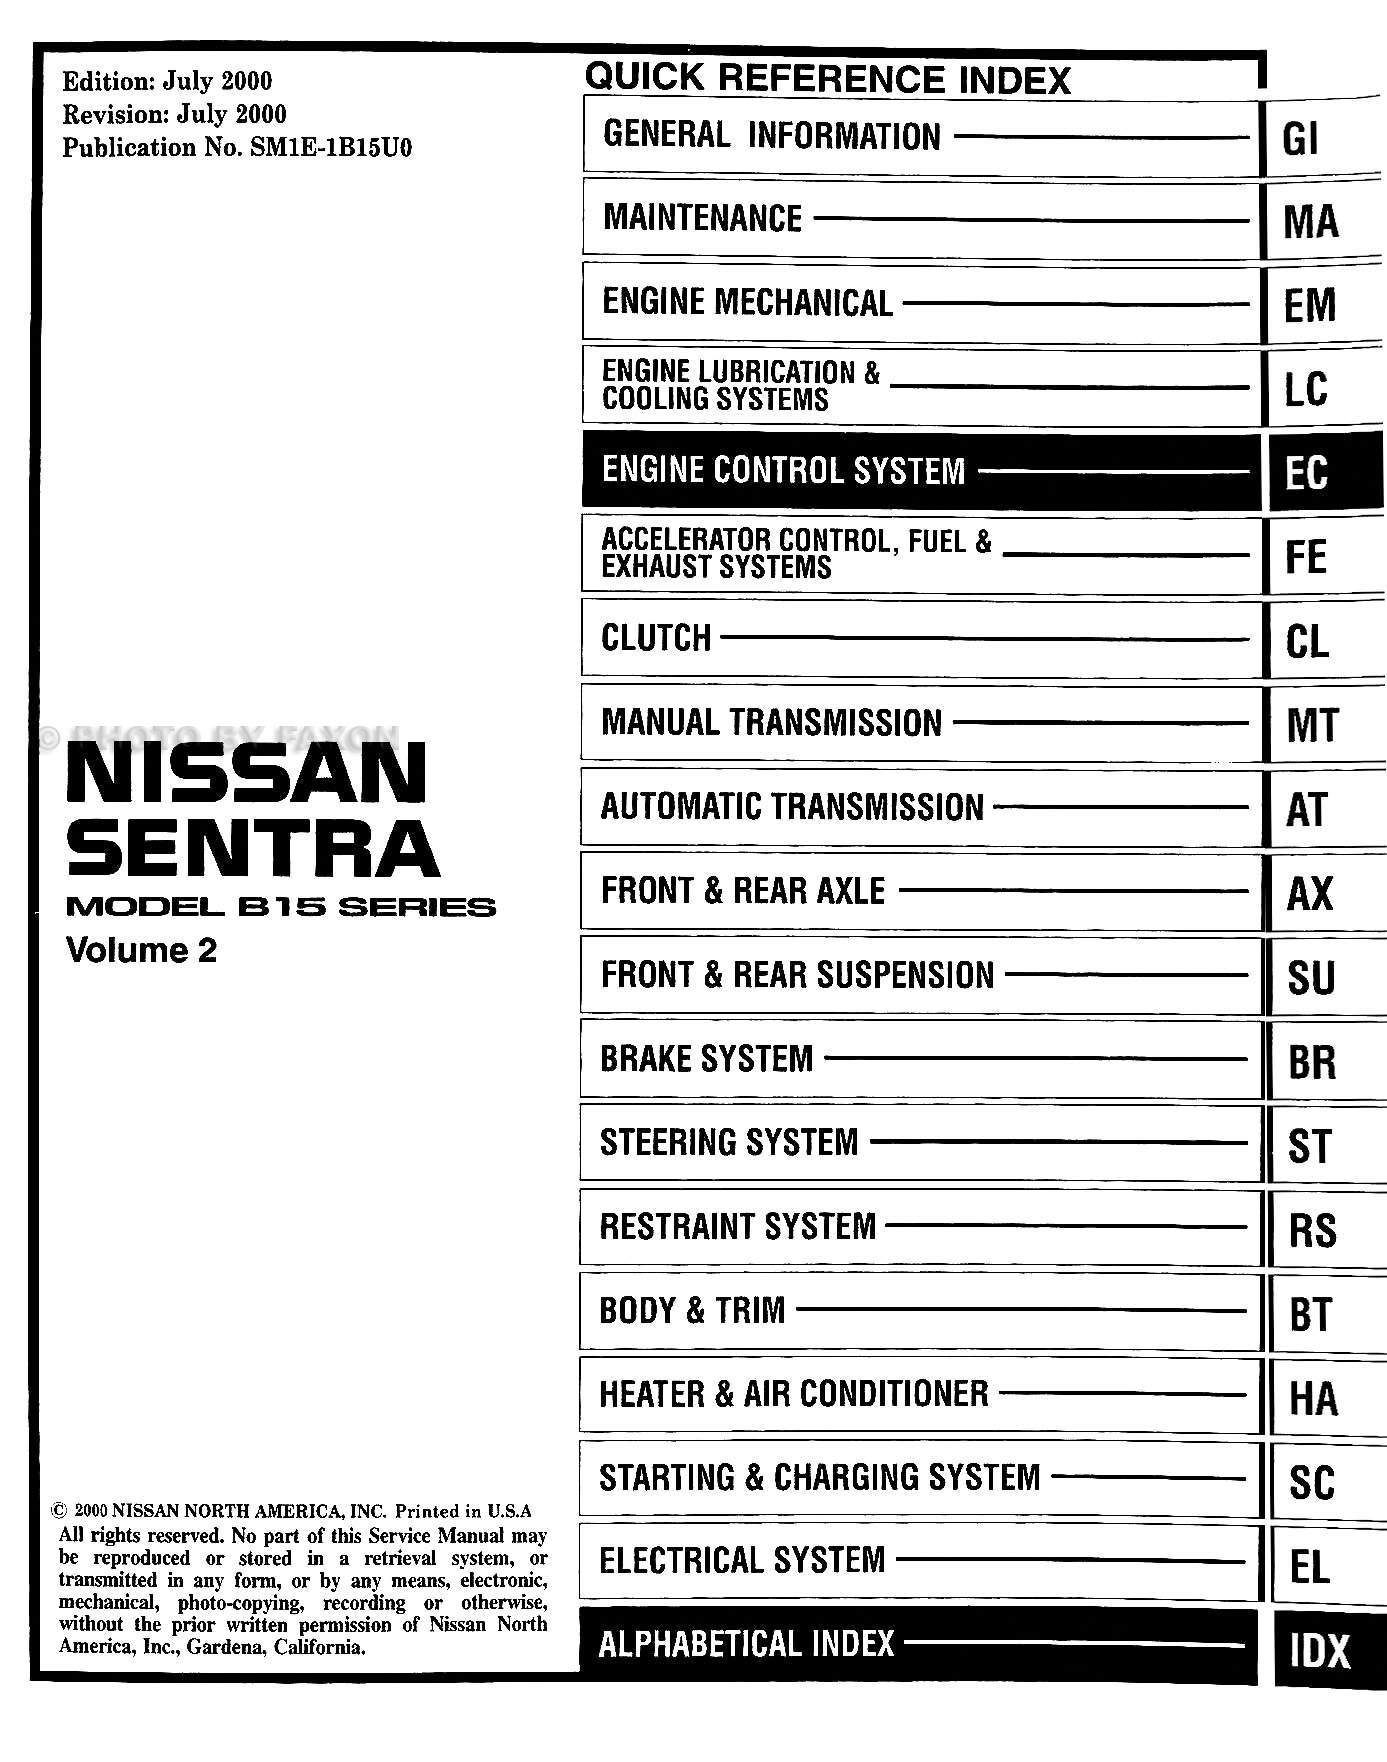 Fuse Panel Diagram For 1992 Nissan Sentra Trusted Wiring Stanza Box Diy Enthusiasts Diagrams U2022 Location